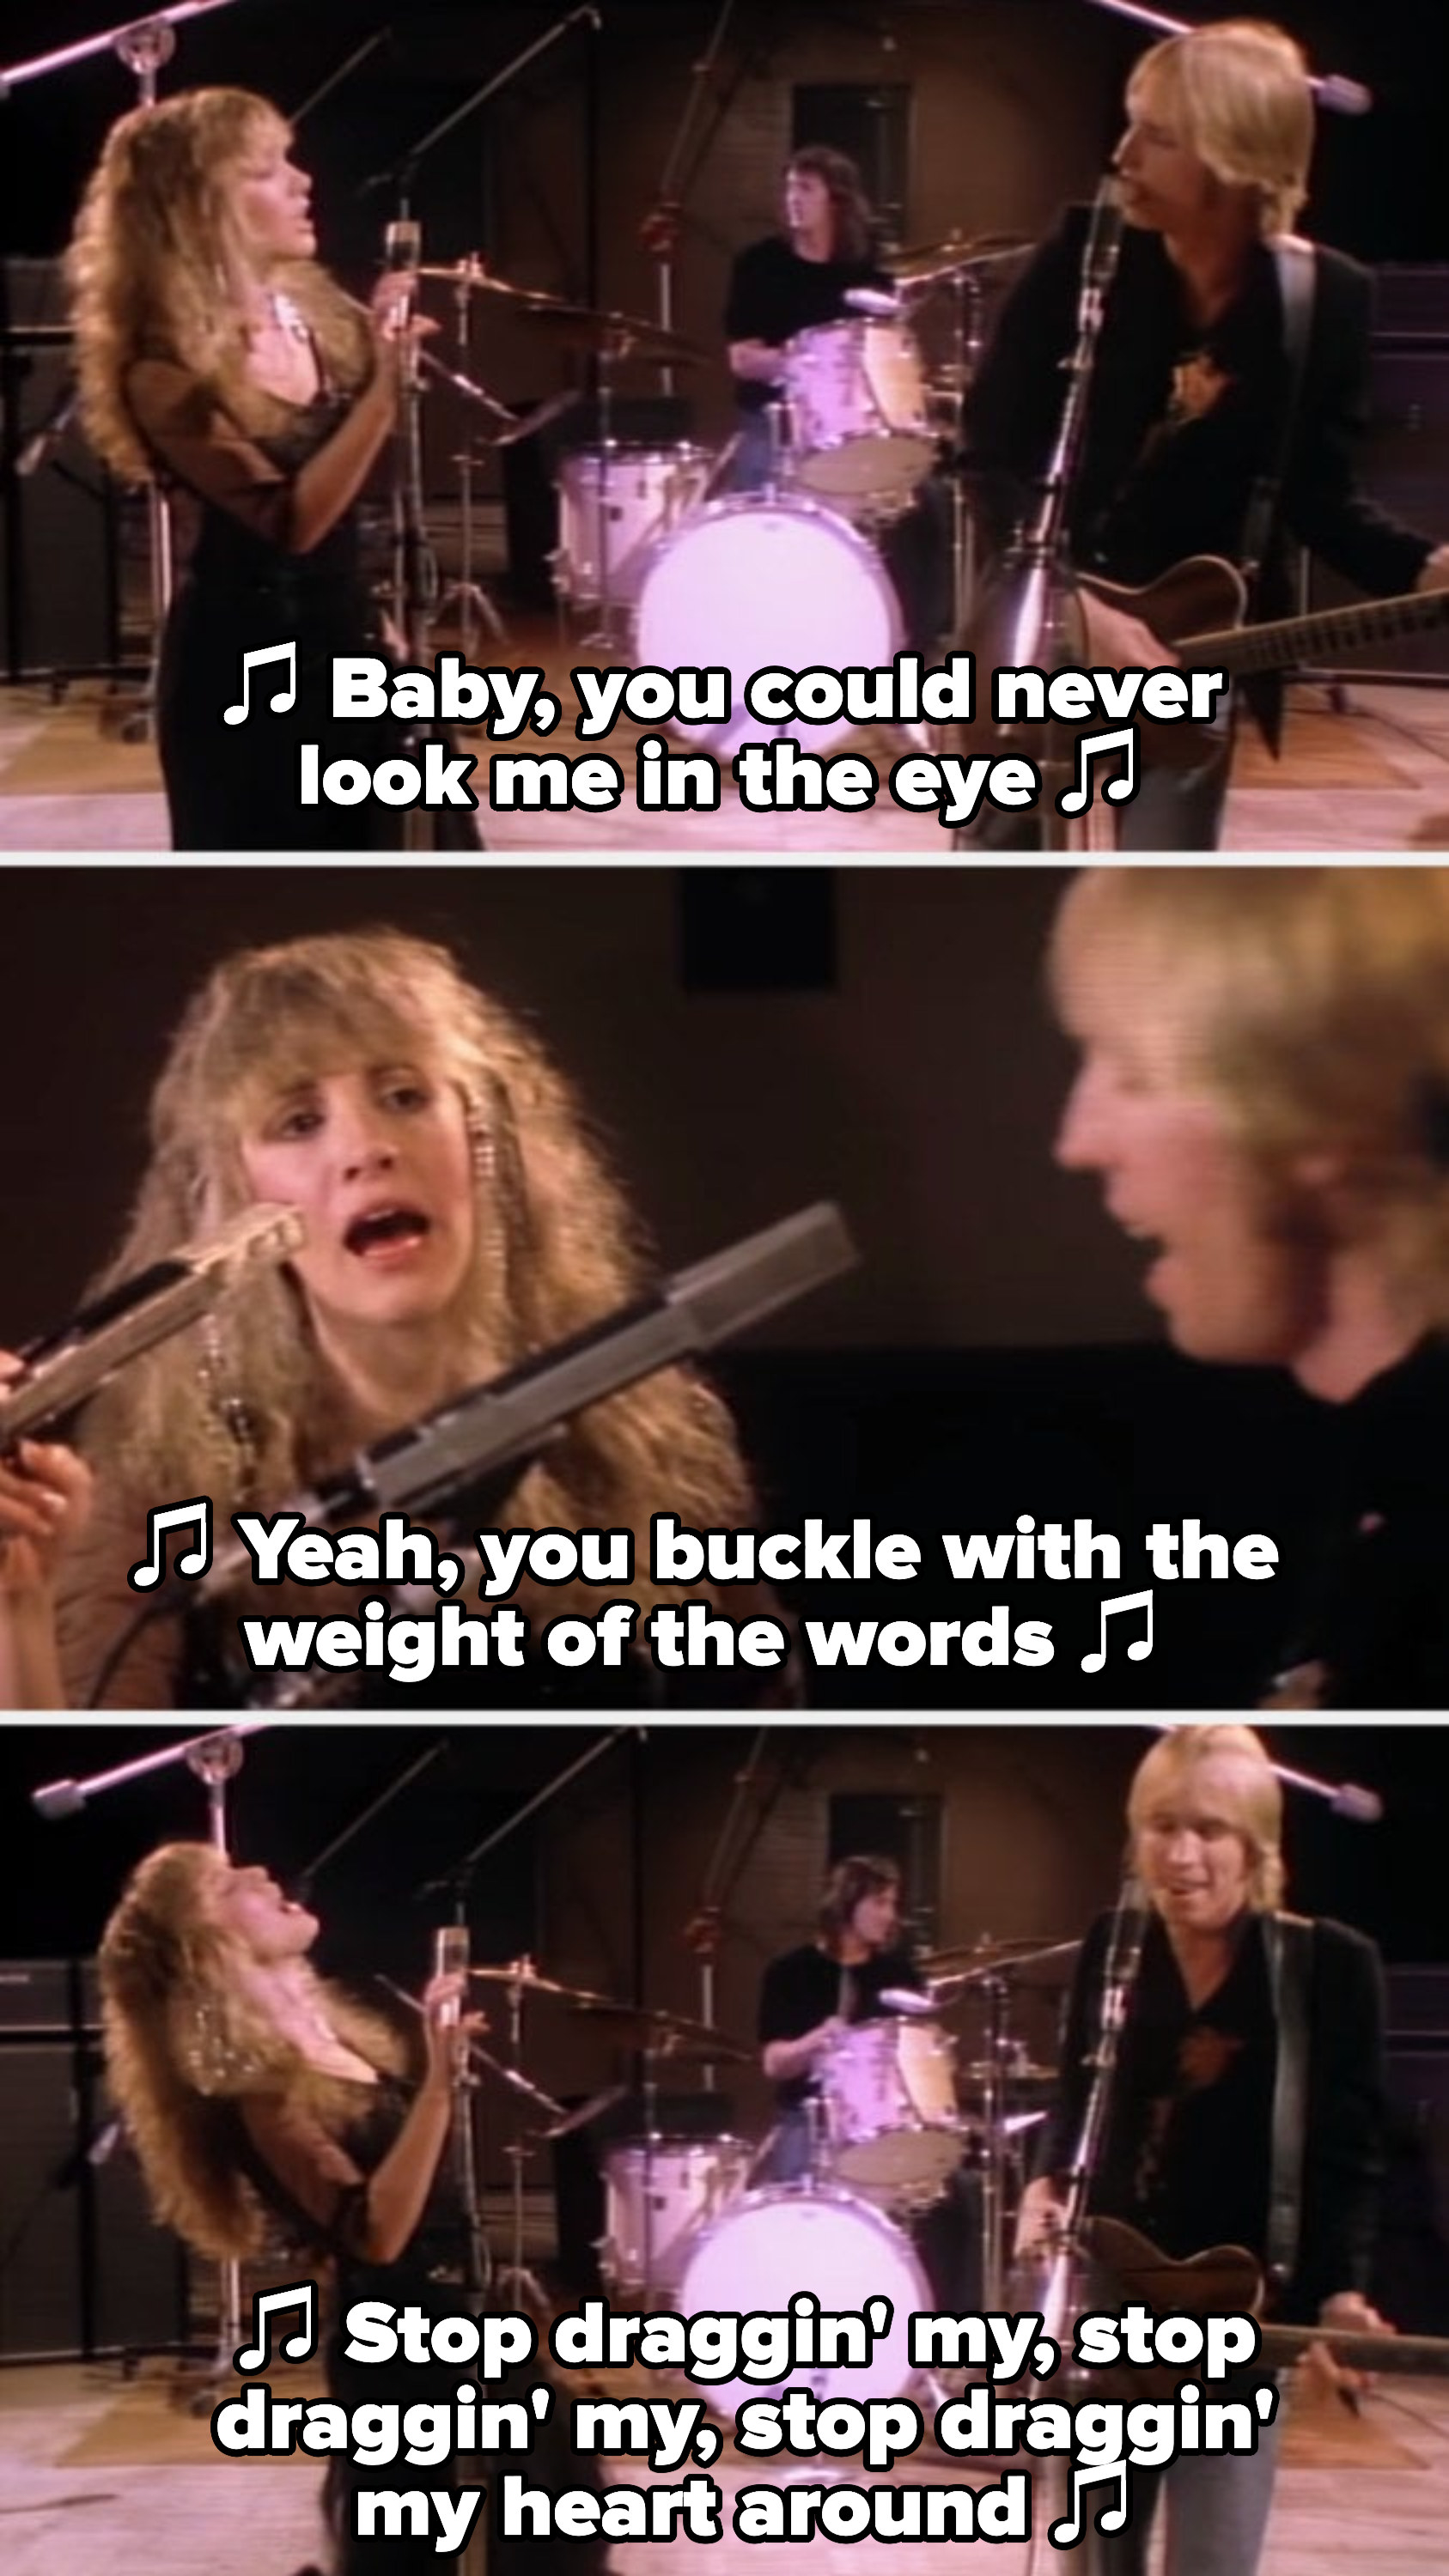 """Nicks and Petty in their """"Stop Draggin' My Heart Around"""" music video, singing: """"Baby, you could never look me in the eye; yeah, you buckle with the weight of the words"""""""